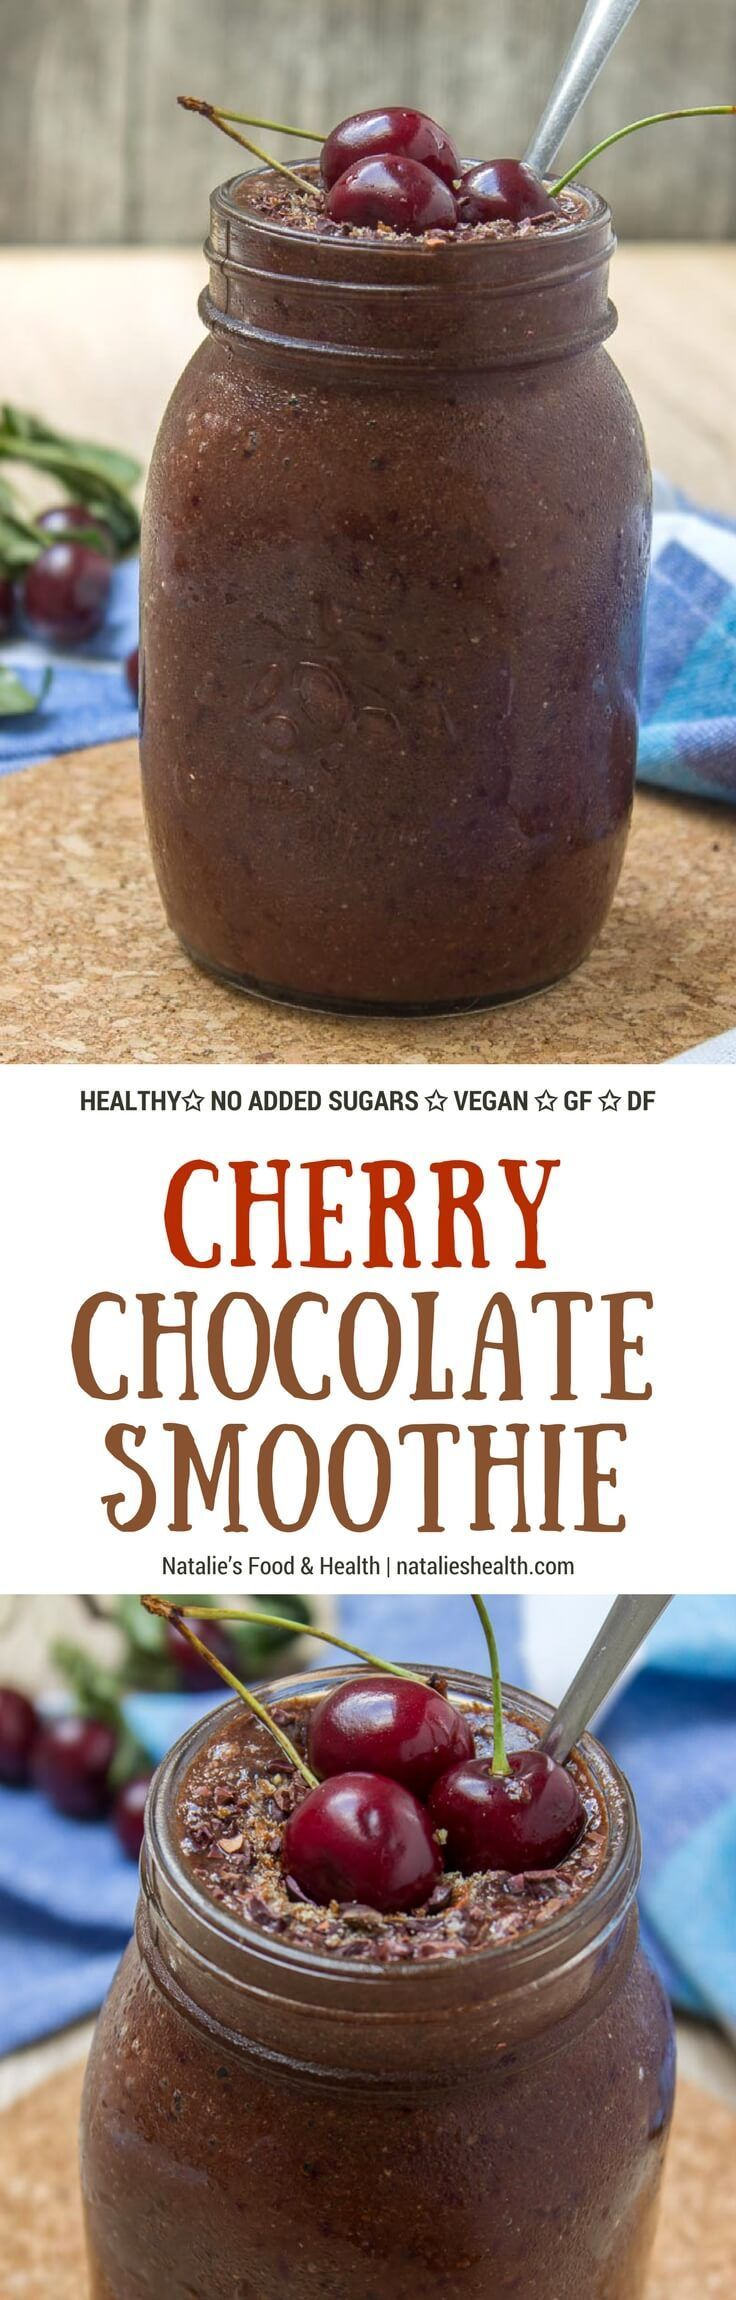 Rich and creamy Cherry Chocolate Smoothie full of chocolate flavor loaded with powerful antioxidants, dietary fibers, and plant-based proteins. This smoothie is very nutritious and low calorie, made without added sugars, vegan, gluten-free and dairy-free.